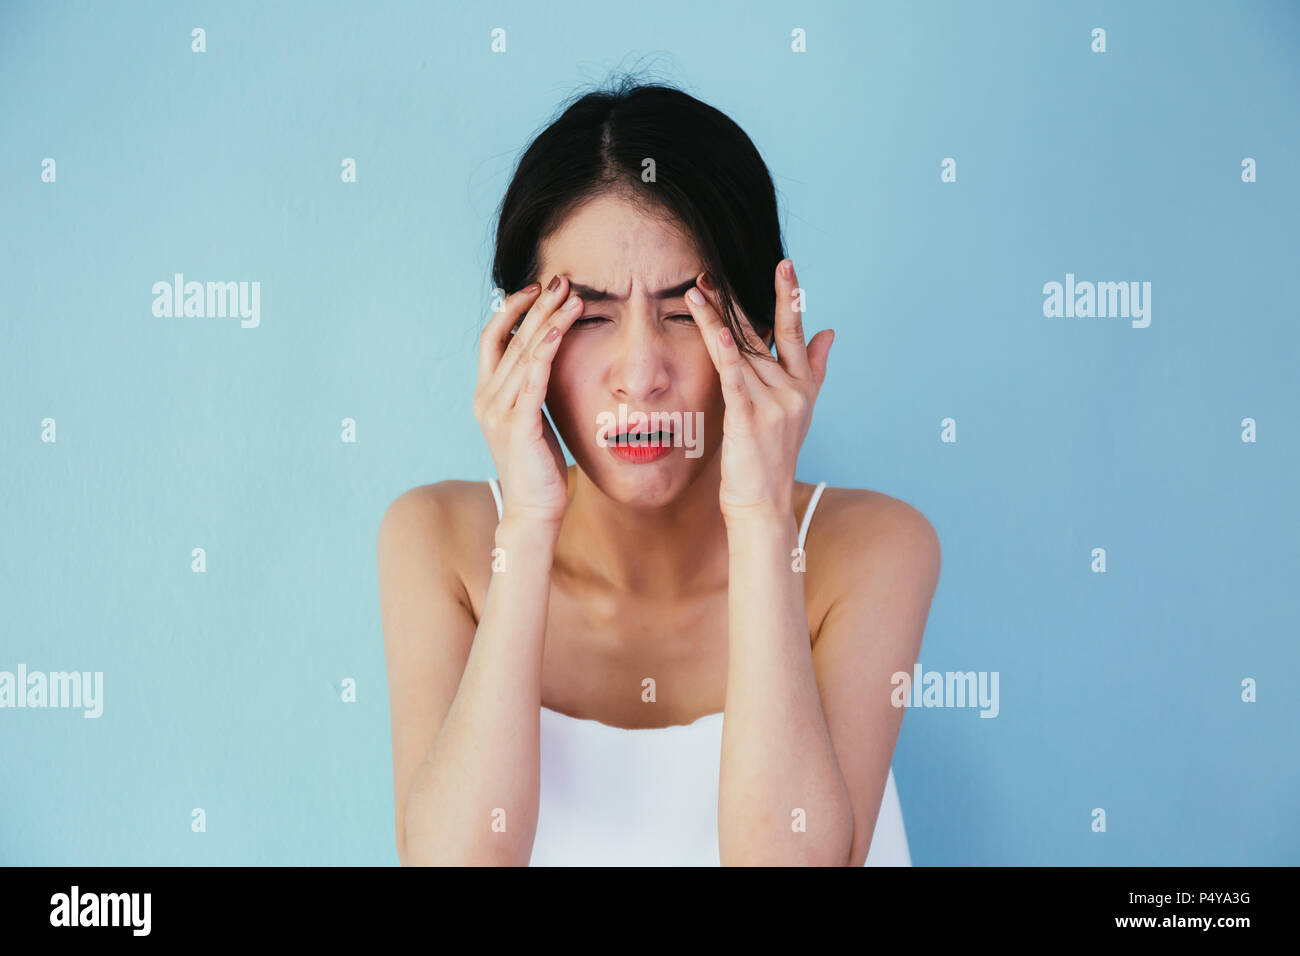 Young Asian woman having eye pain and soreness isolated over blue background - Healthcare and Medical concept - Stock Image